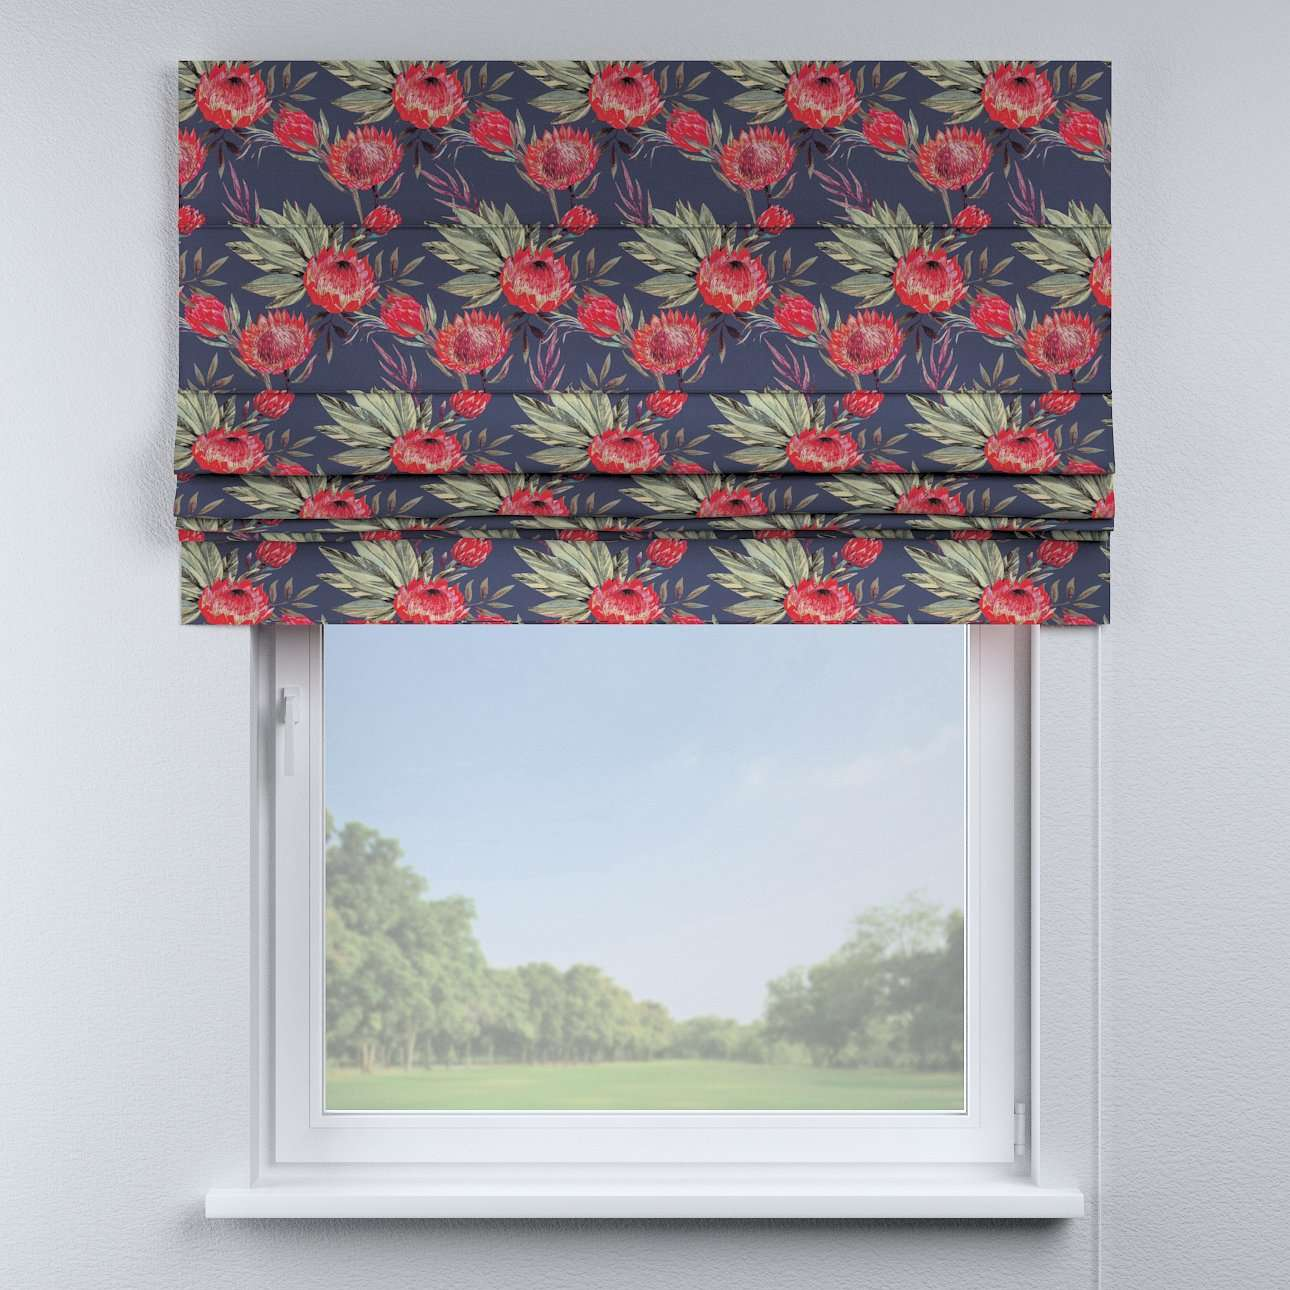 Padva roman blind  in collection New Art, fabric: 141-57